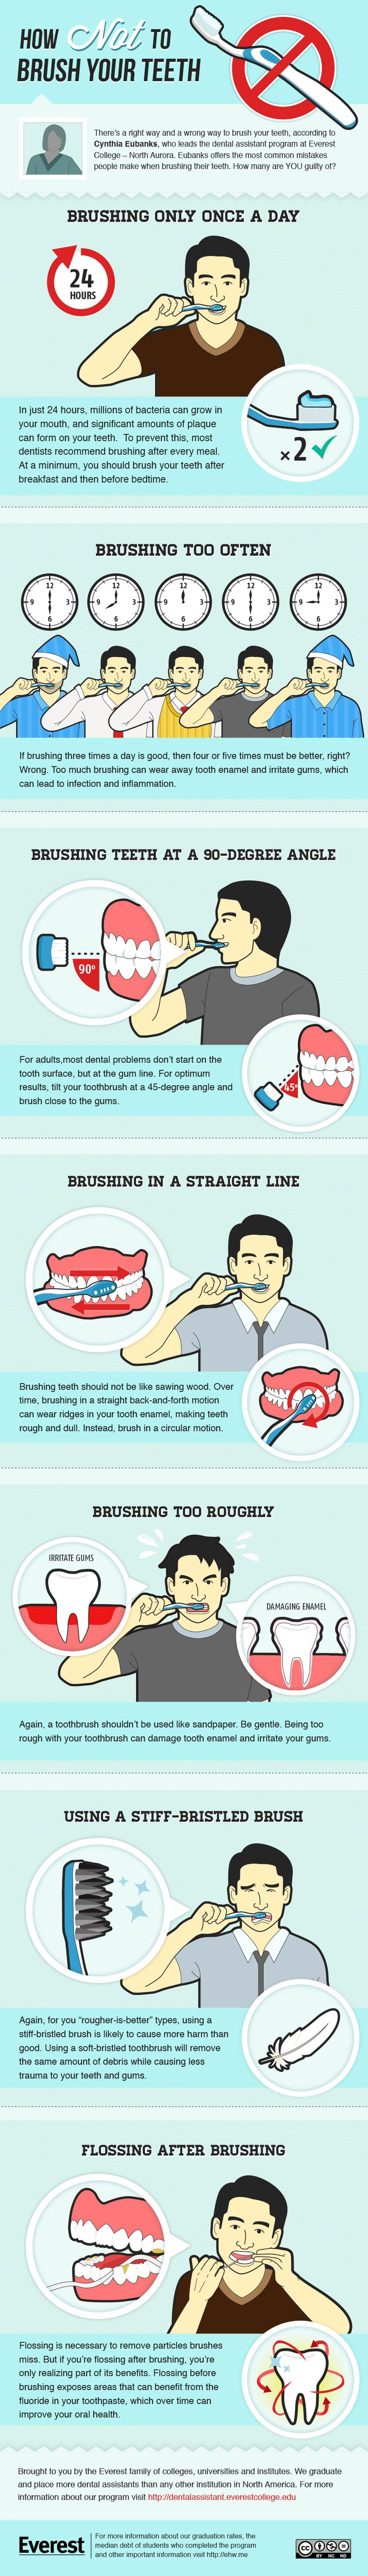 How NOT to Brush Your Teeth!